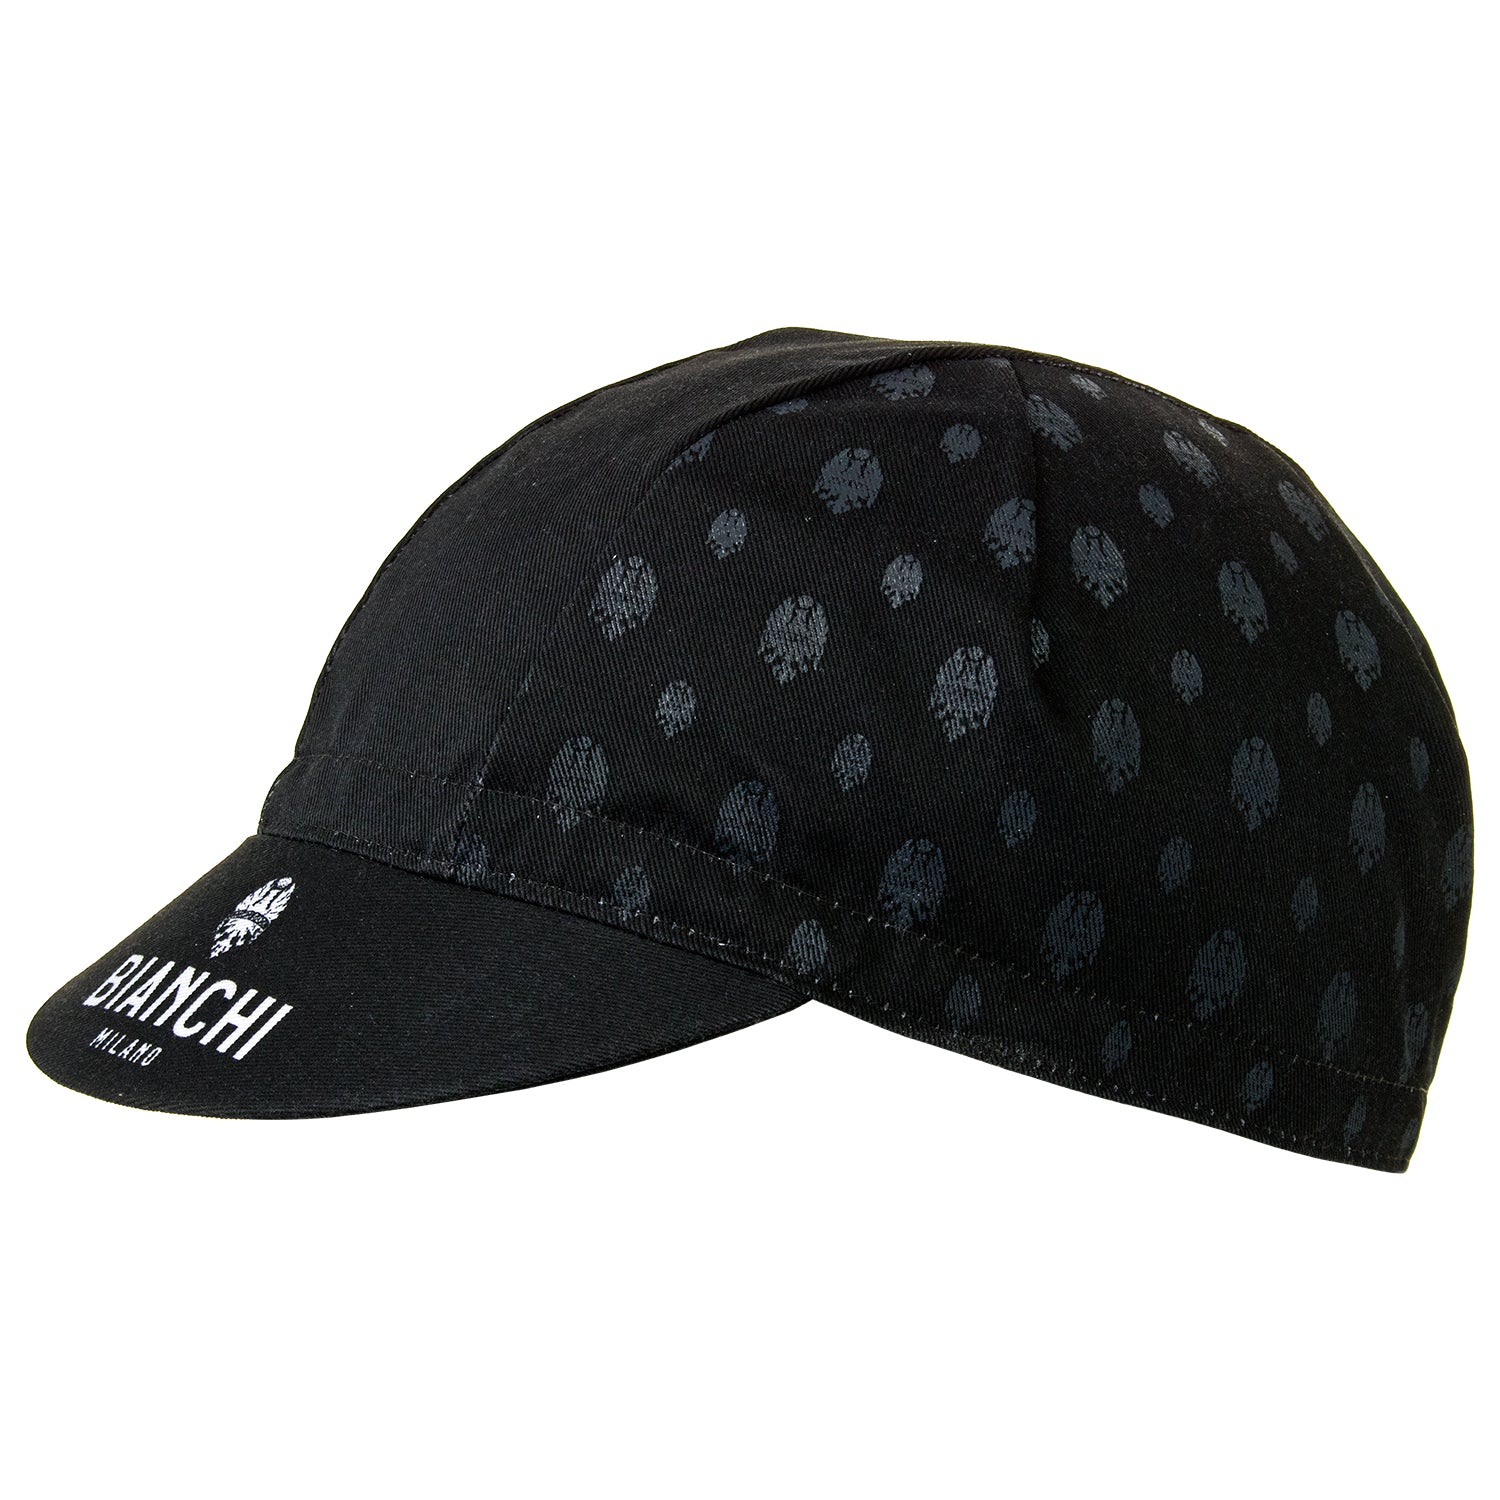 Bianchi Cycling Cap - Neon Black/Grey